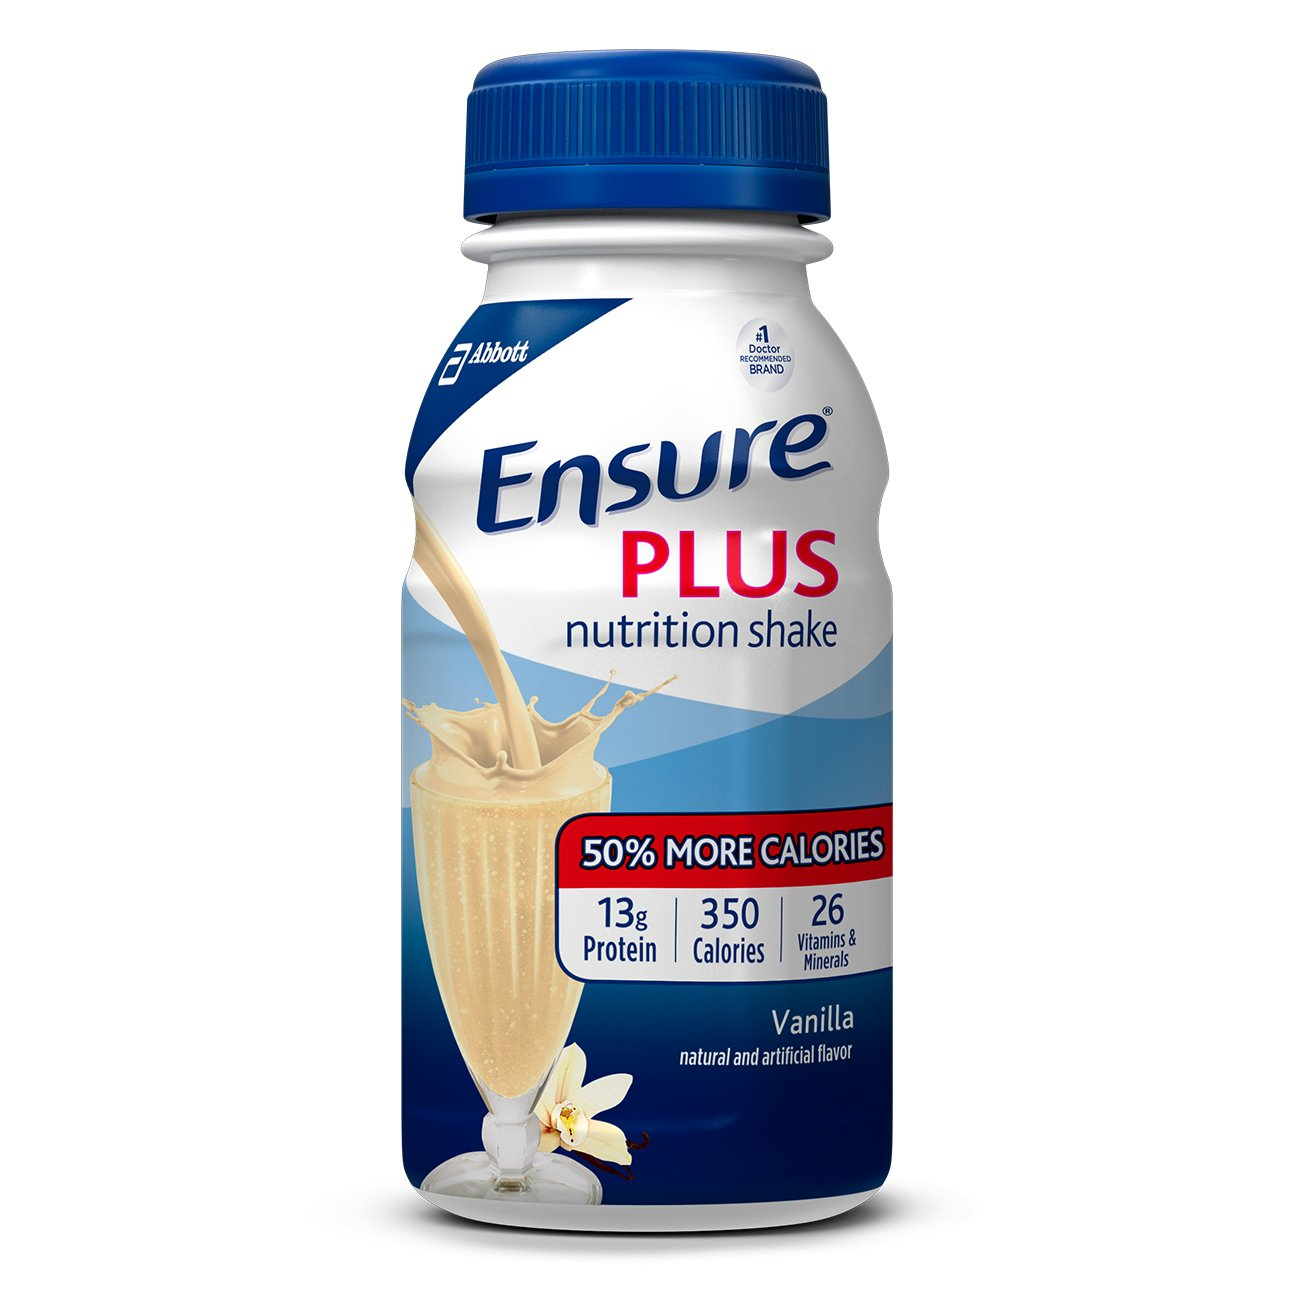 Ensure Plus Nutrition Shake with 13 grams of high-quality protein, Meal Replacement Shakes, Vanilla, 8 fl oz, 24 count by Ensure Plus